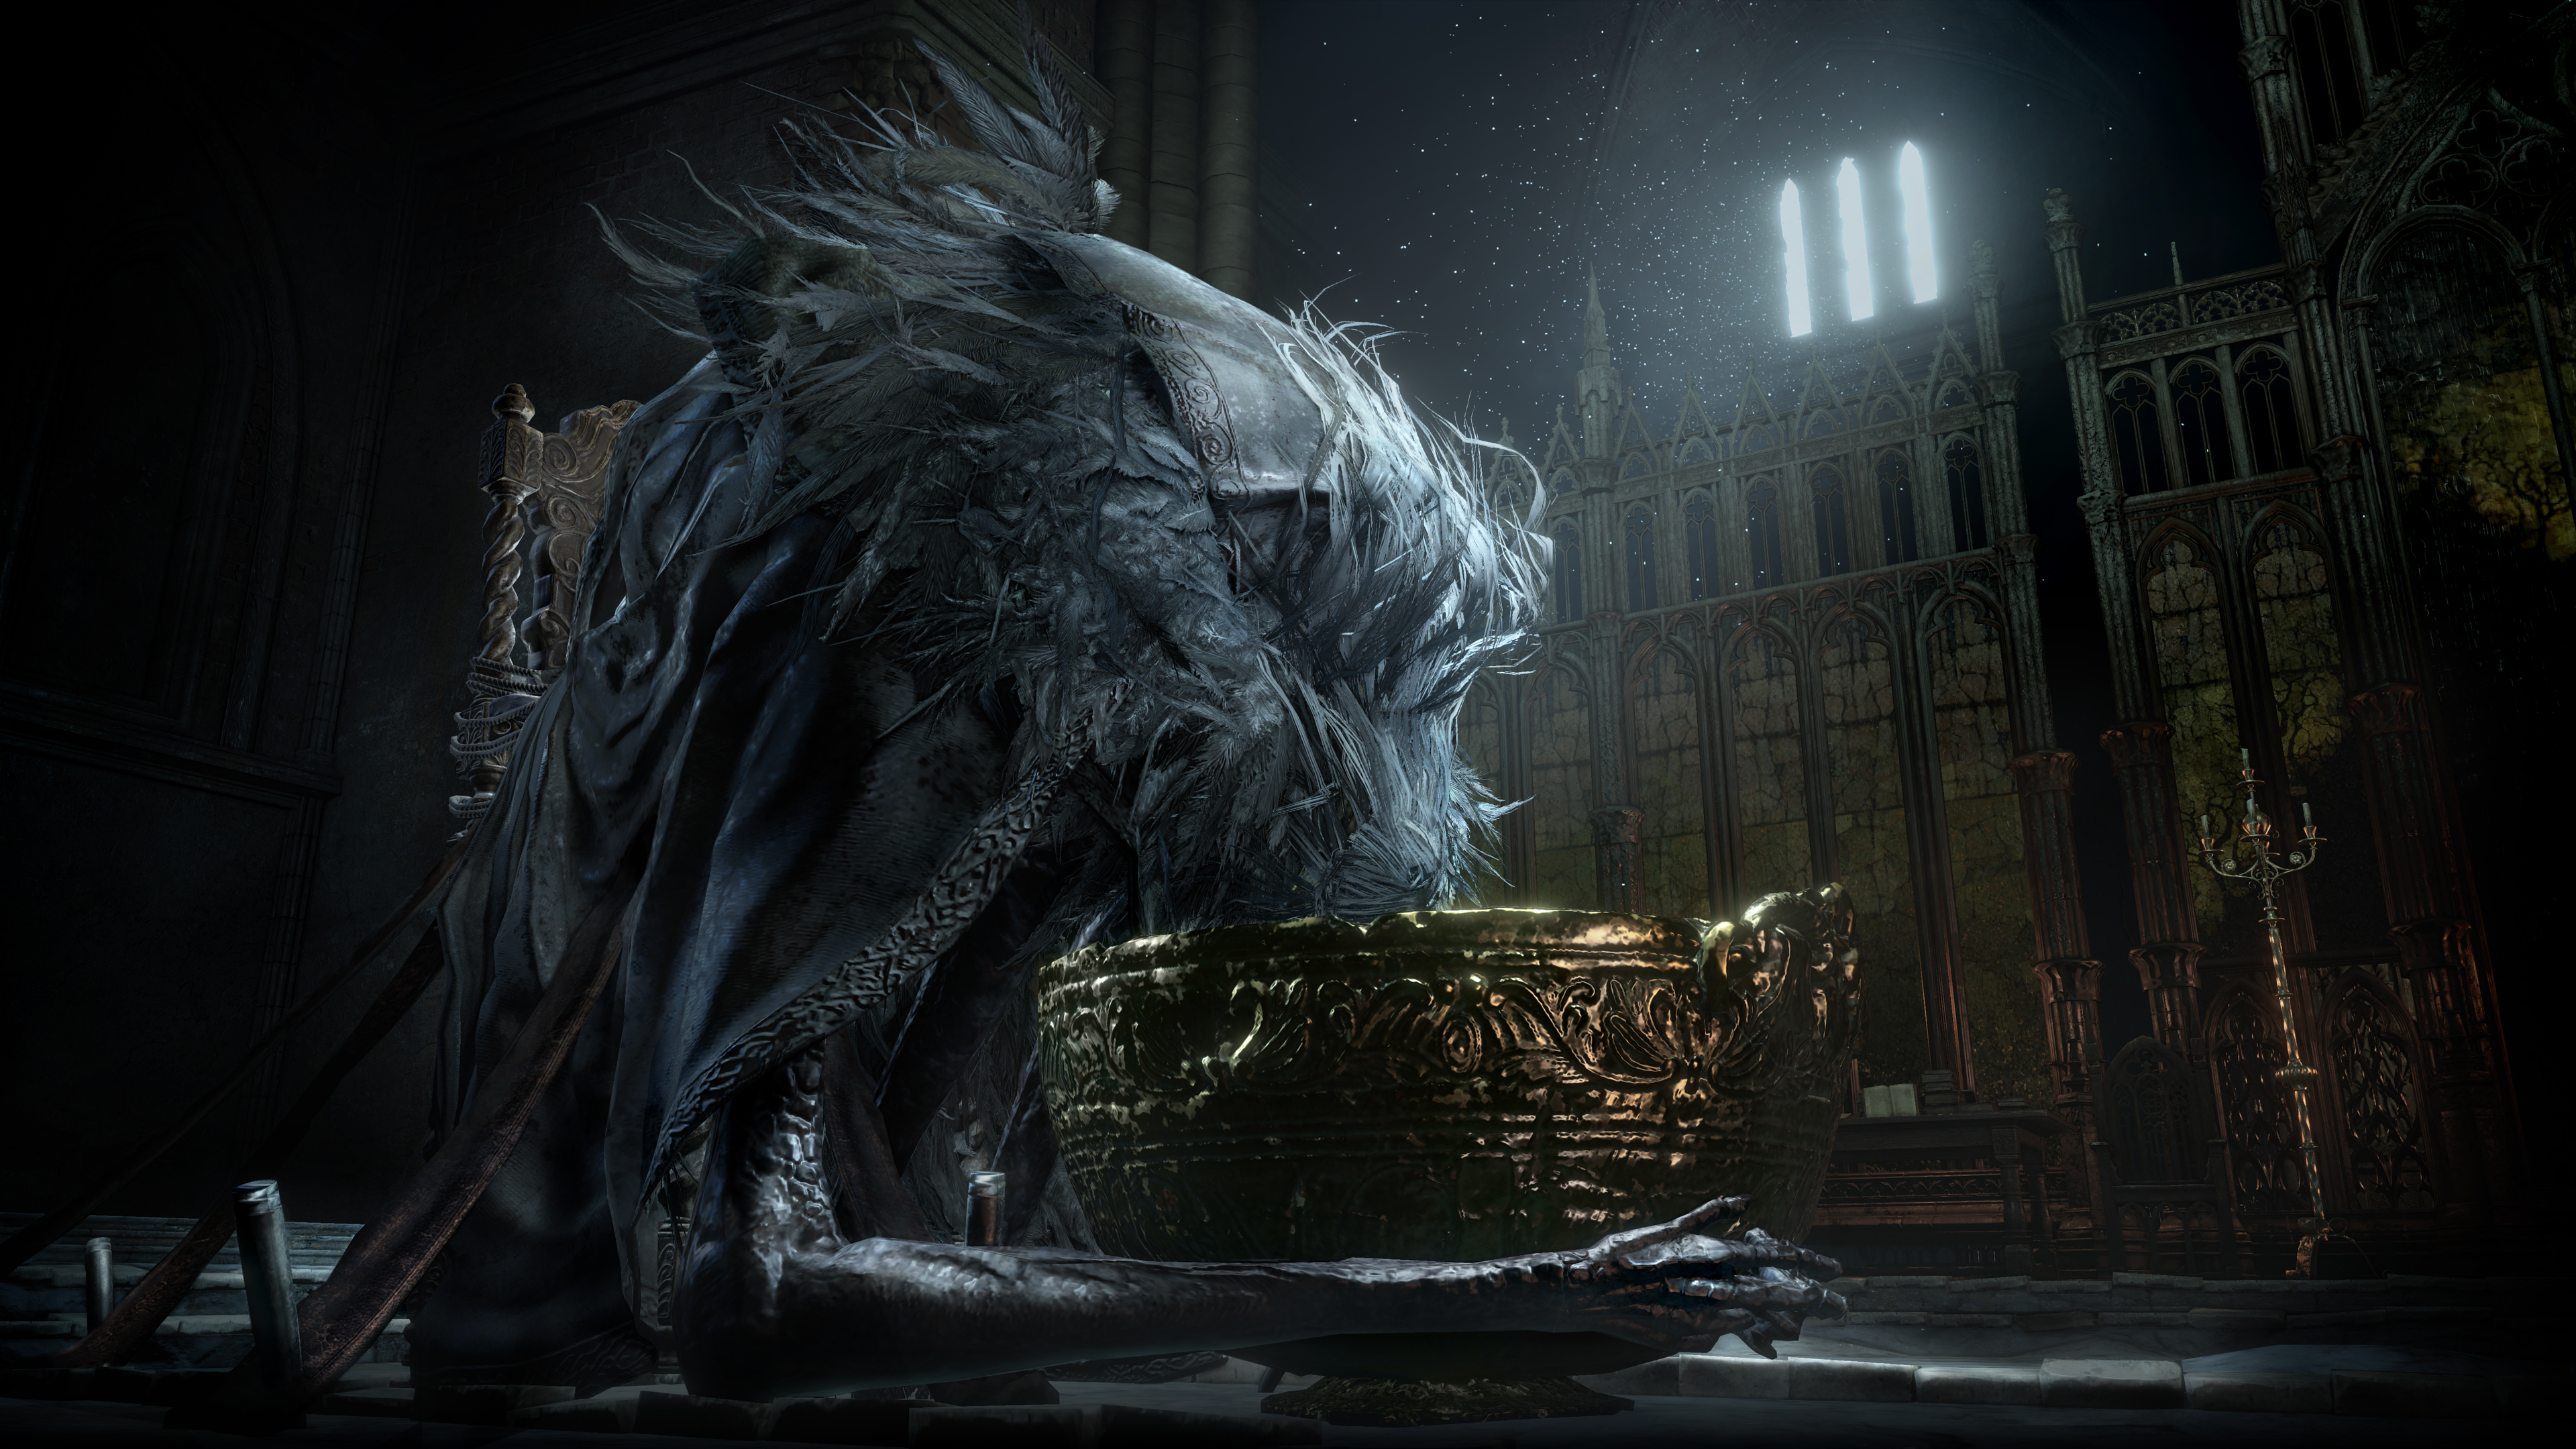 Ariandel And The Sable Church Of Londor Theory Darksouls3 Pursue the lord of hollows questline by marrying anri at anor londo. sable church of londor theory